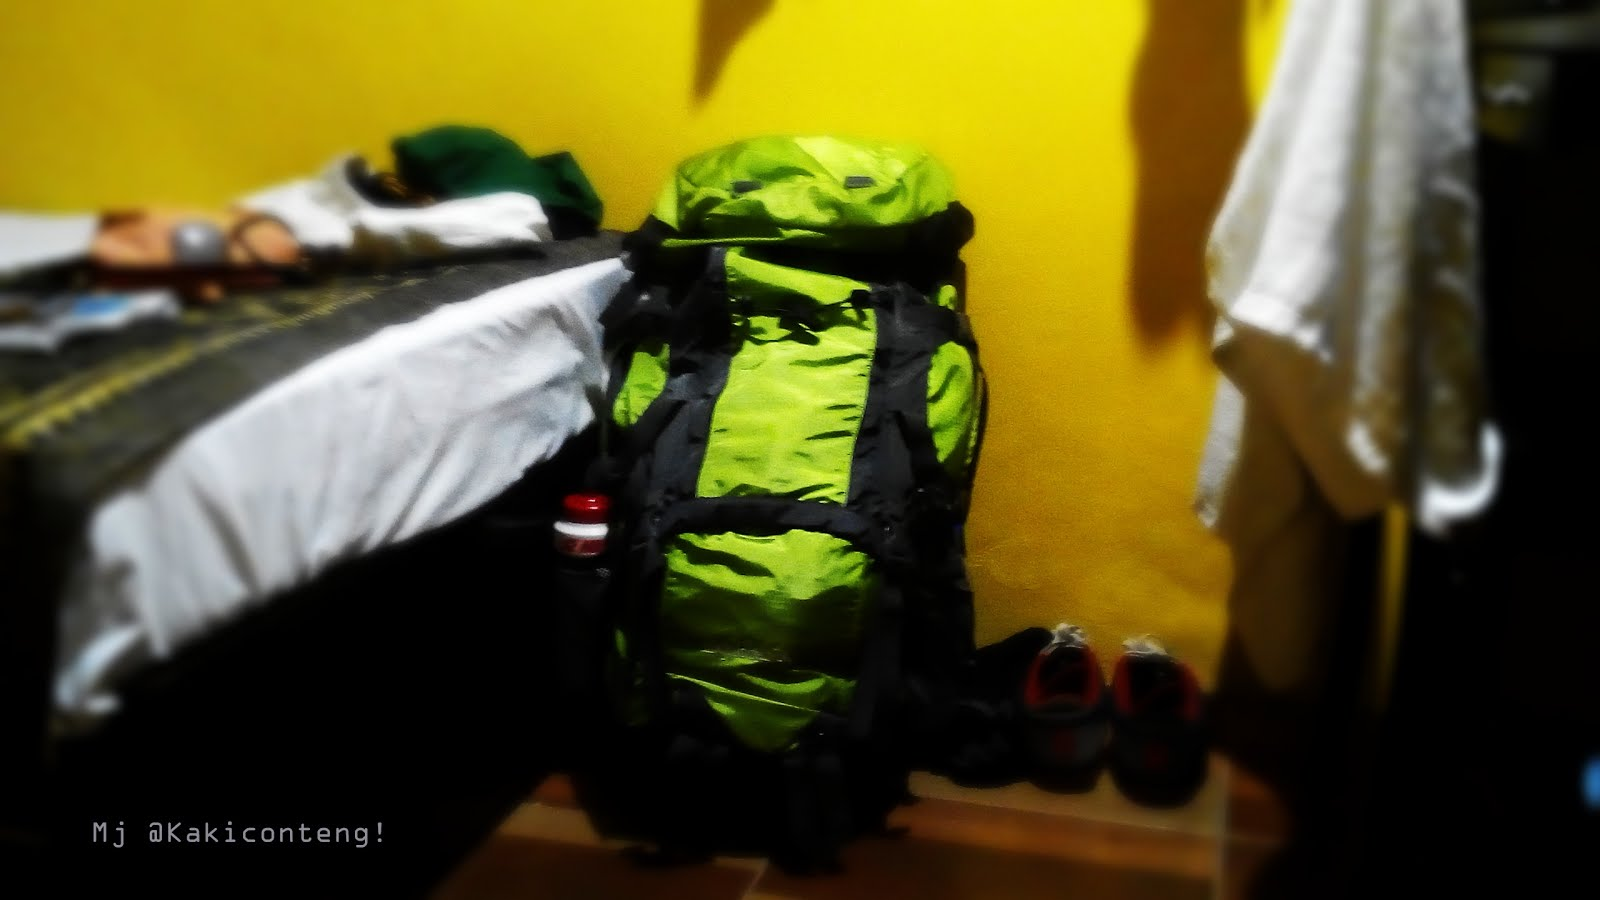 BACKPACKER [2015]